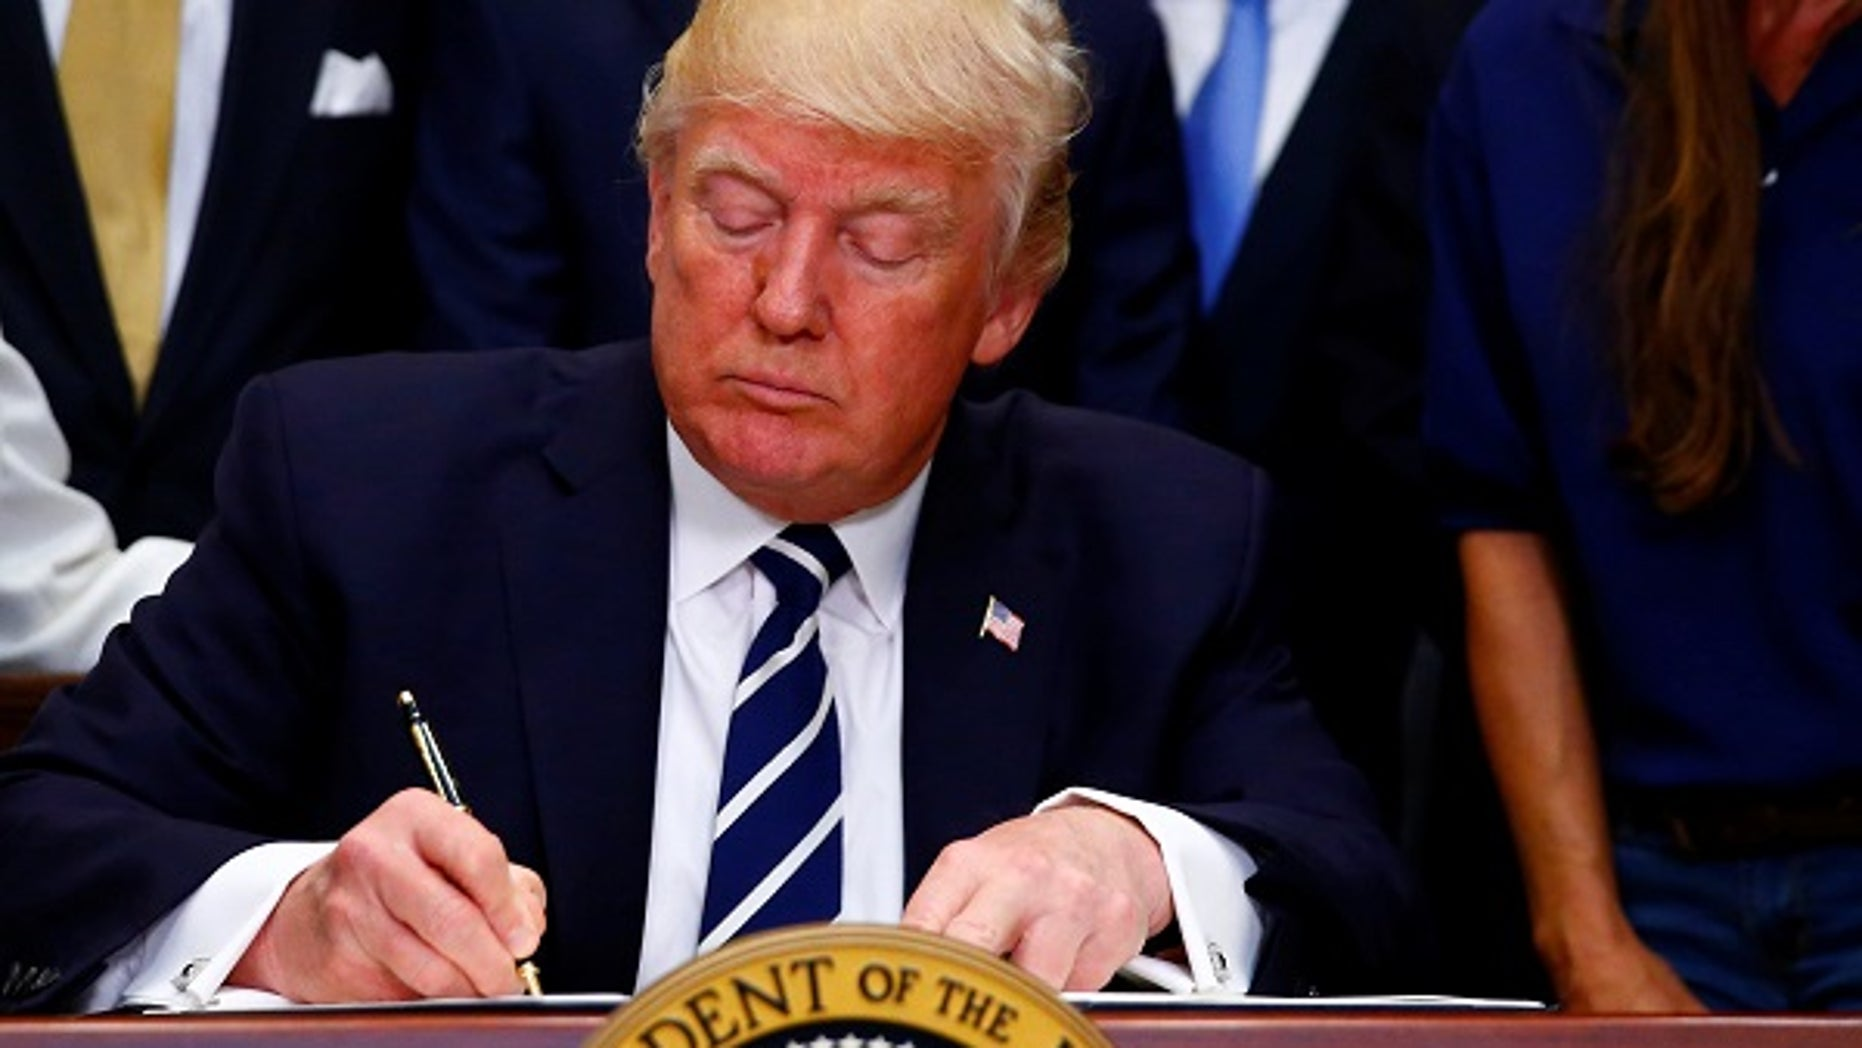 """U.S. President Donald J. Trump delivers remarks on """"Apprenticeship and Workforce of Tomorrow"""" initiatives and signs an executive order at the White House in Washington, U.S. June 15, 2017. REUTERS/Eric Thayer - RTS178NS"""